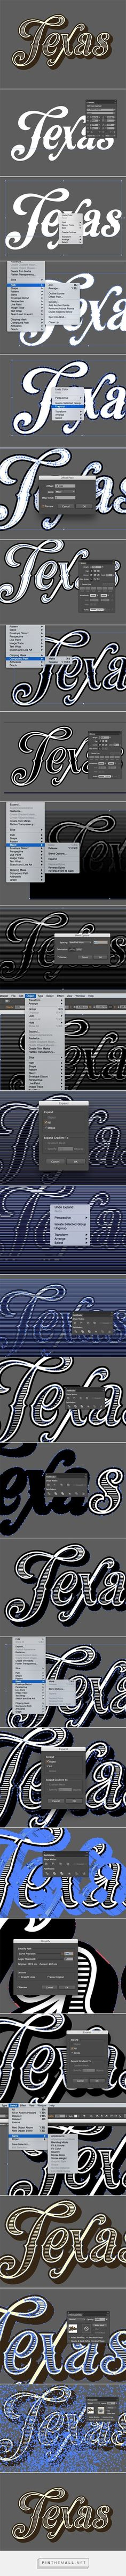 "How To Create a Vintage Text Effect in Illustrator - created via <a href=""http://pinthemall.net"" rel=""nofollow"" target=""_blank"">pinthemall.net</a> http://jrstudioweb.com/diseno-grafico/diseno-de-logotipos/"